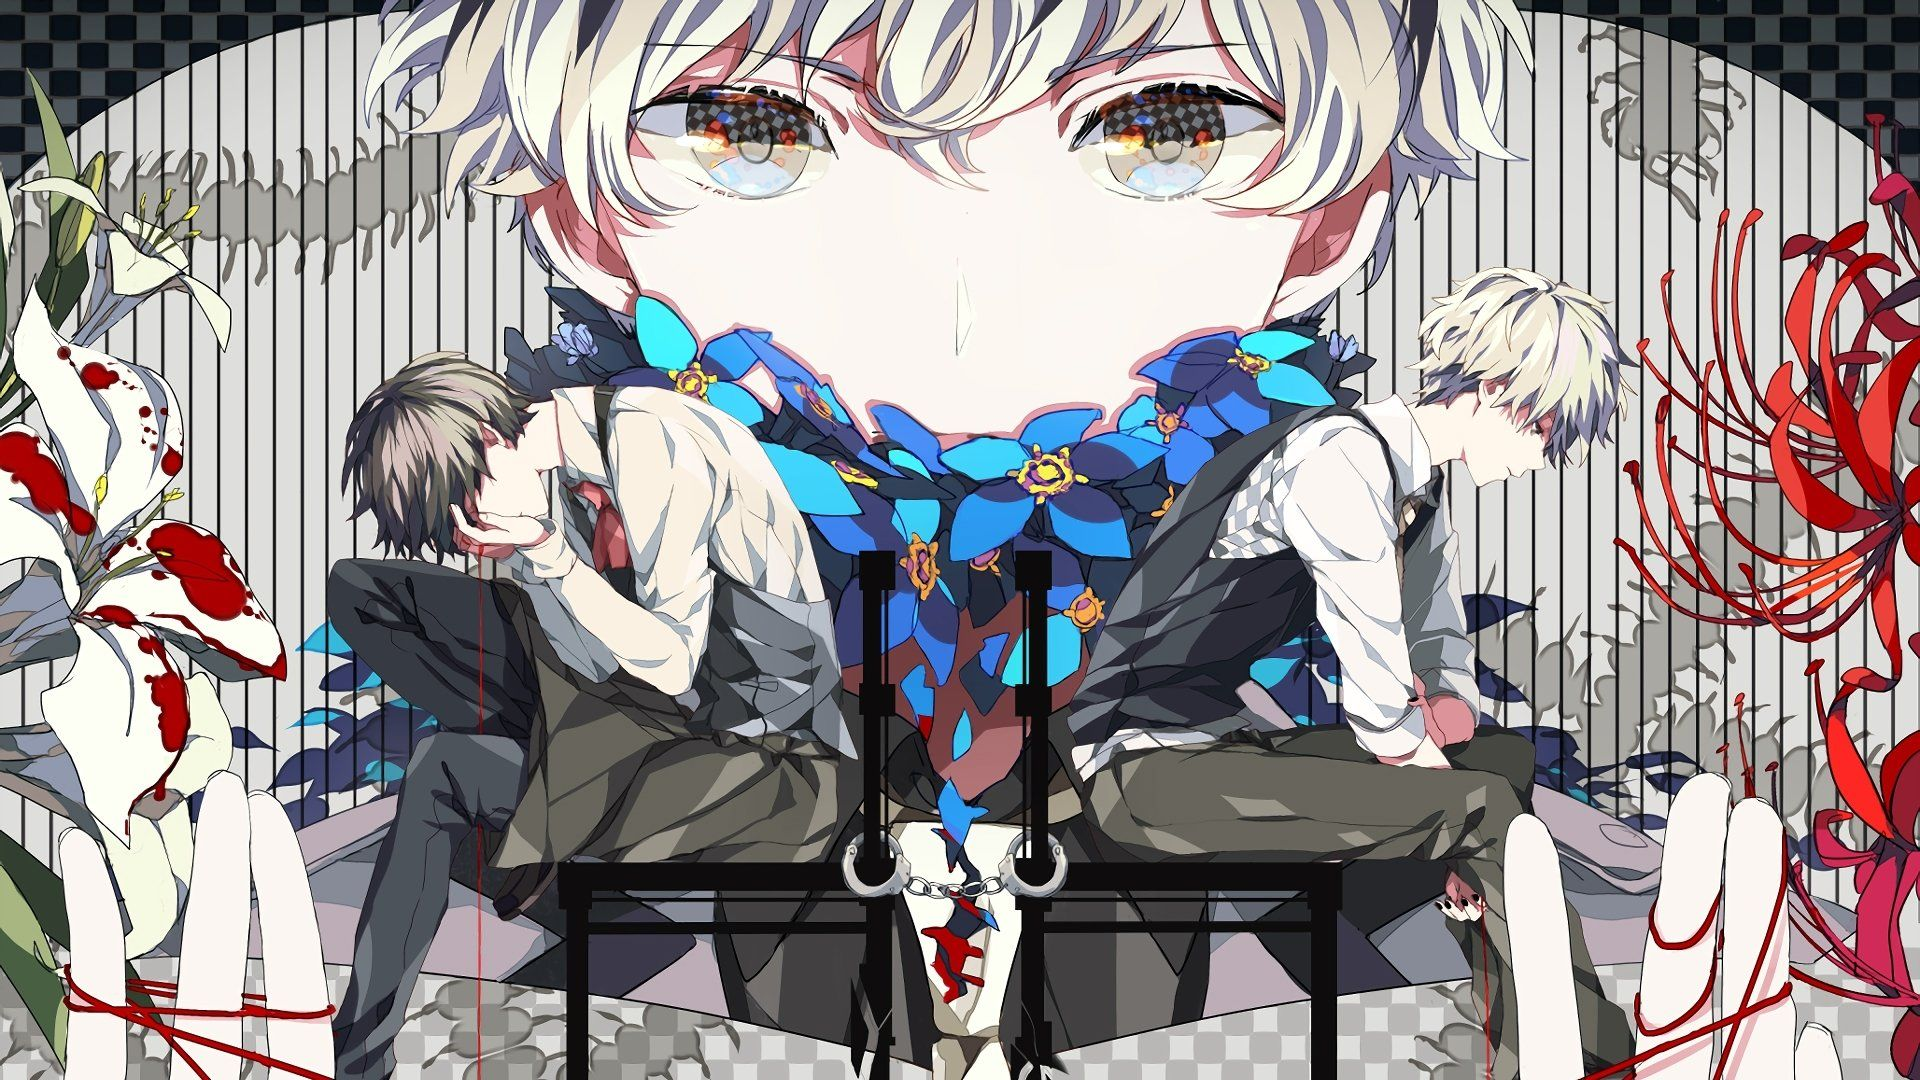 Just Watched Tokyo Ghoul Re Season 3 Some Of The Animation Are